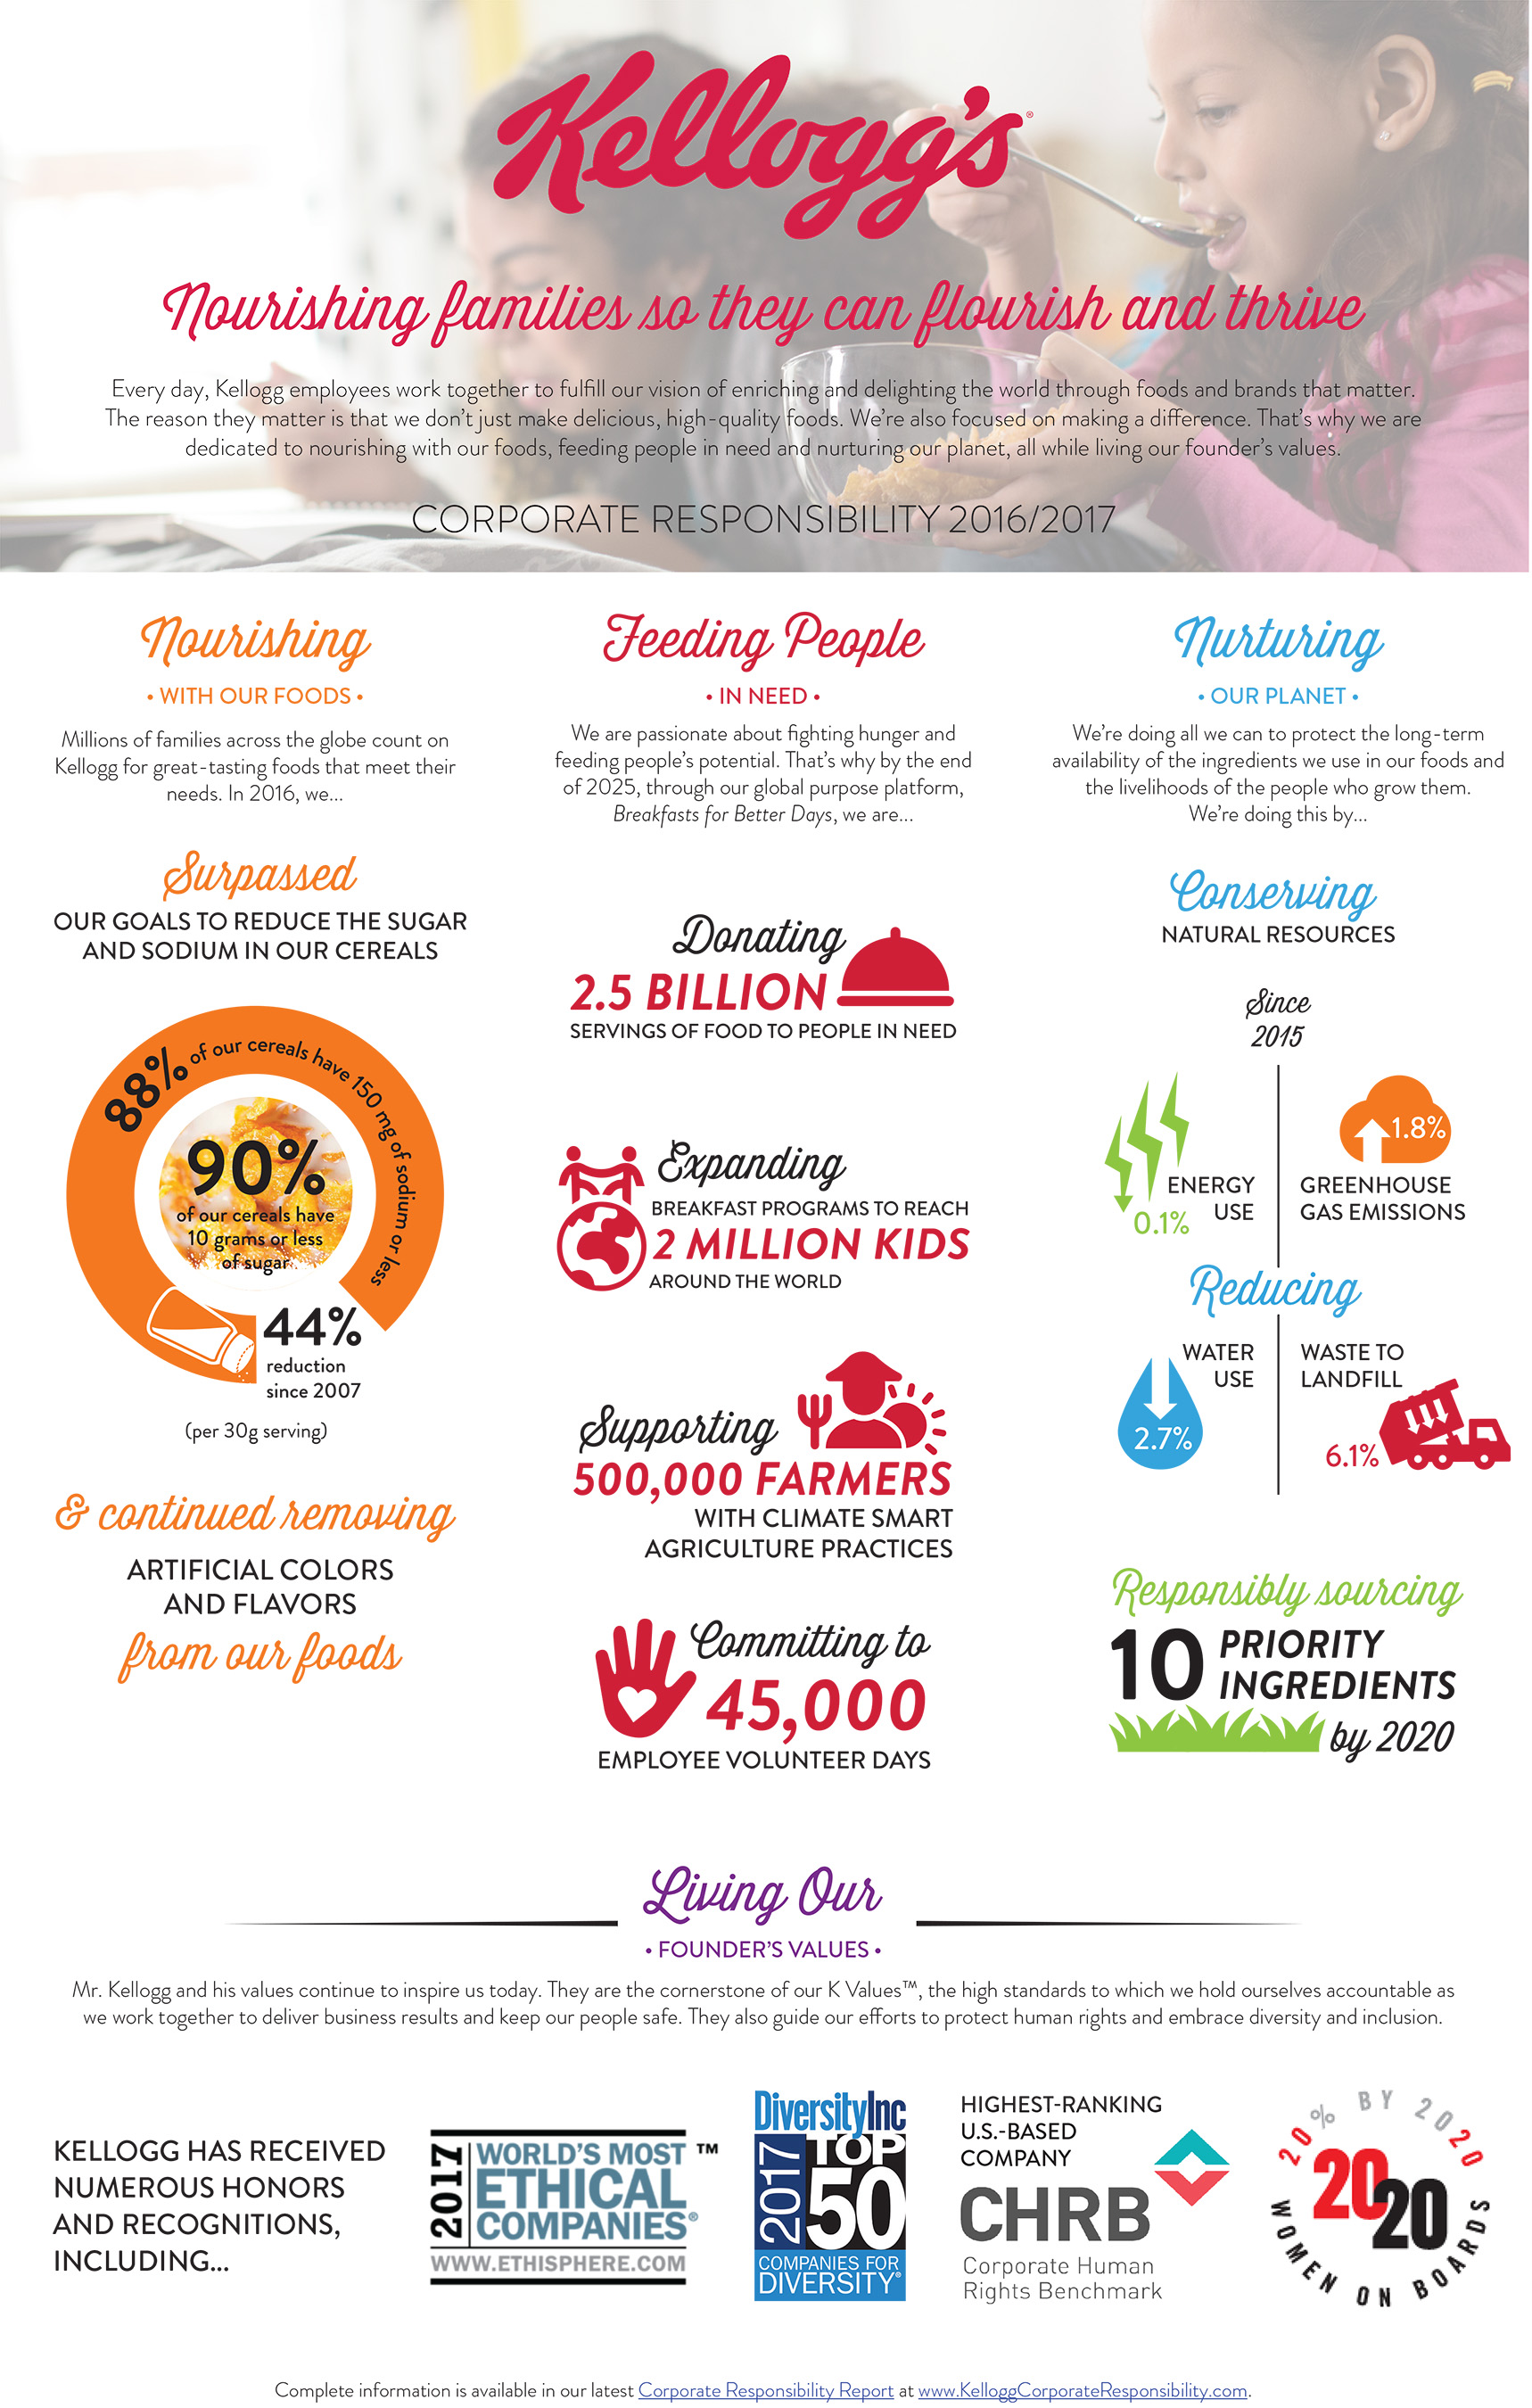 A quick look at our corporate responsibility performance in a few key areas.